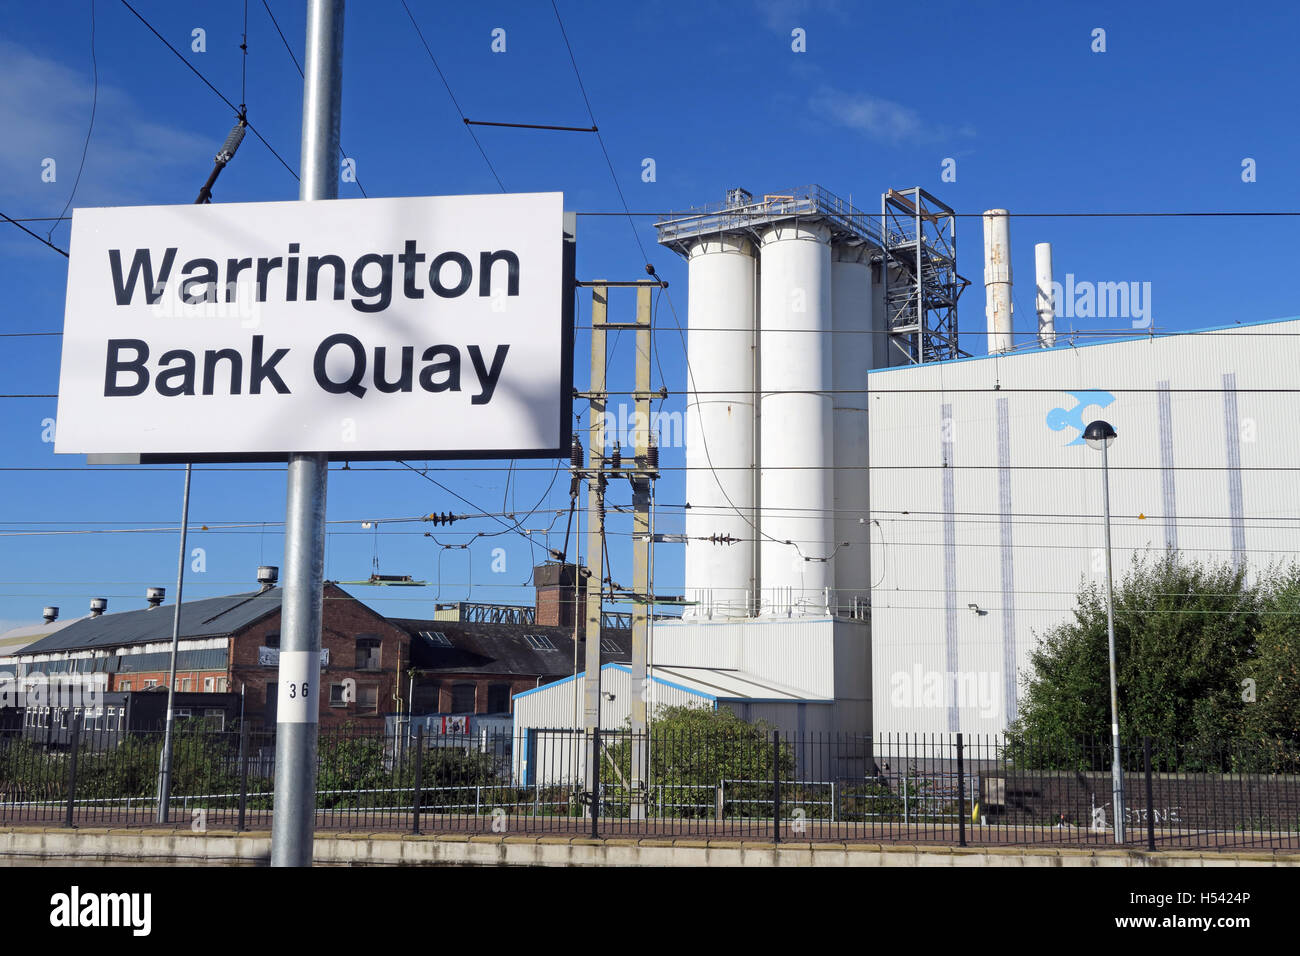 Warrington Bank Quay Rail Station, WCML Cheshire, England,UK -sign & Crossfields factory - Stock Image